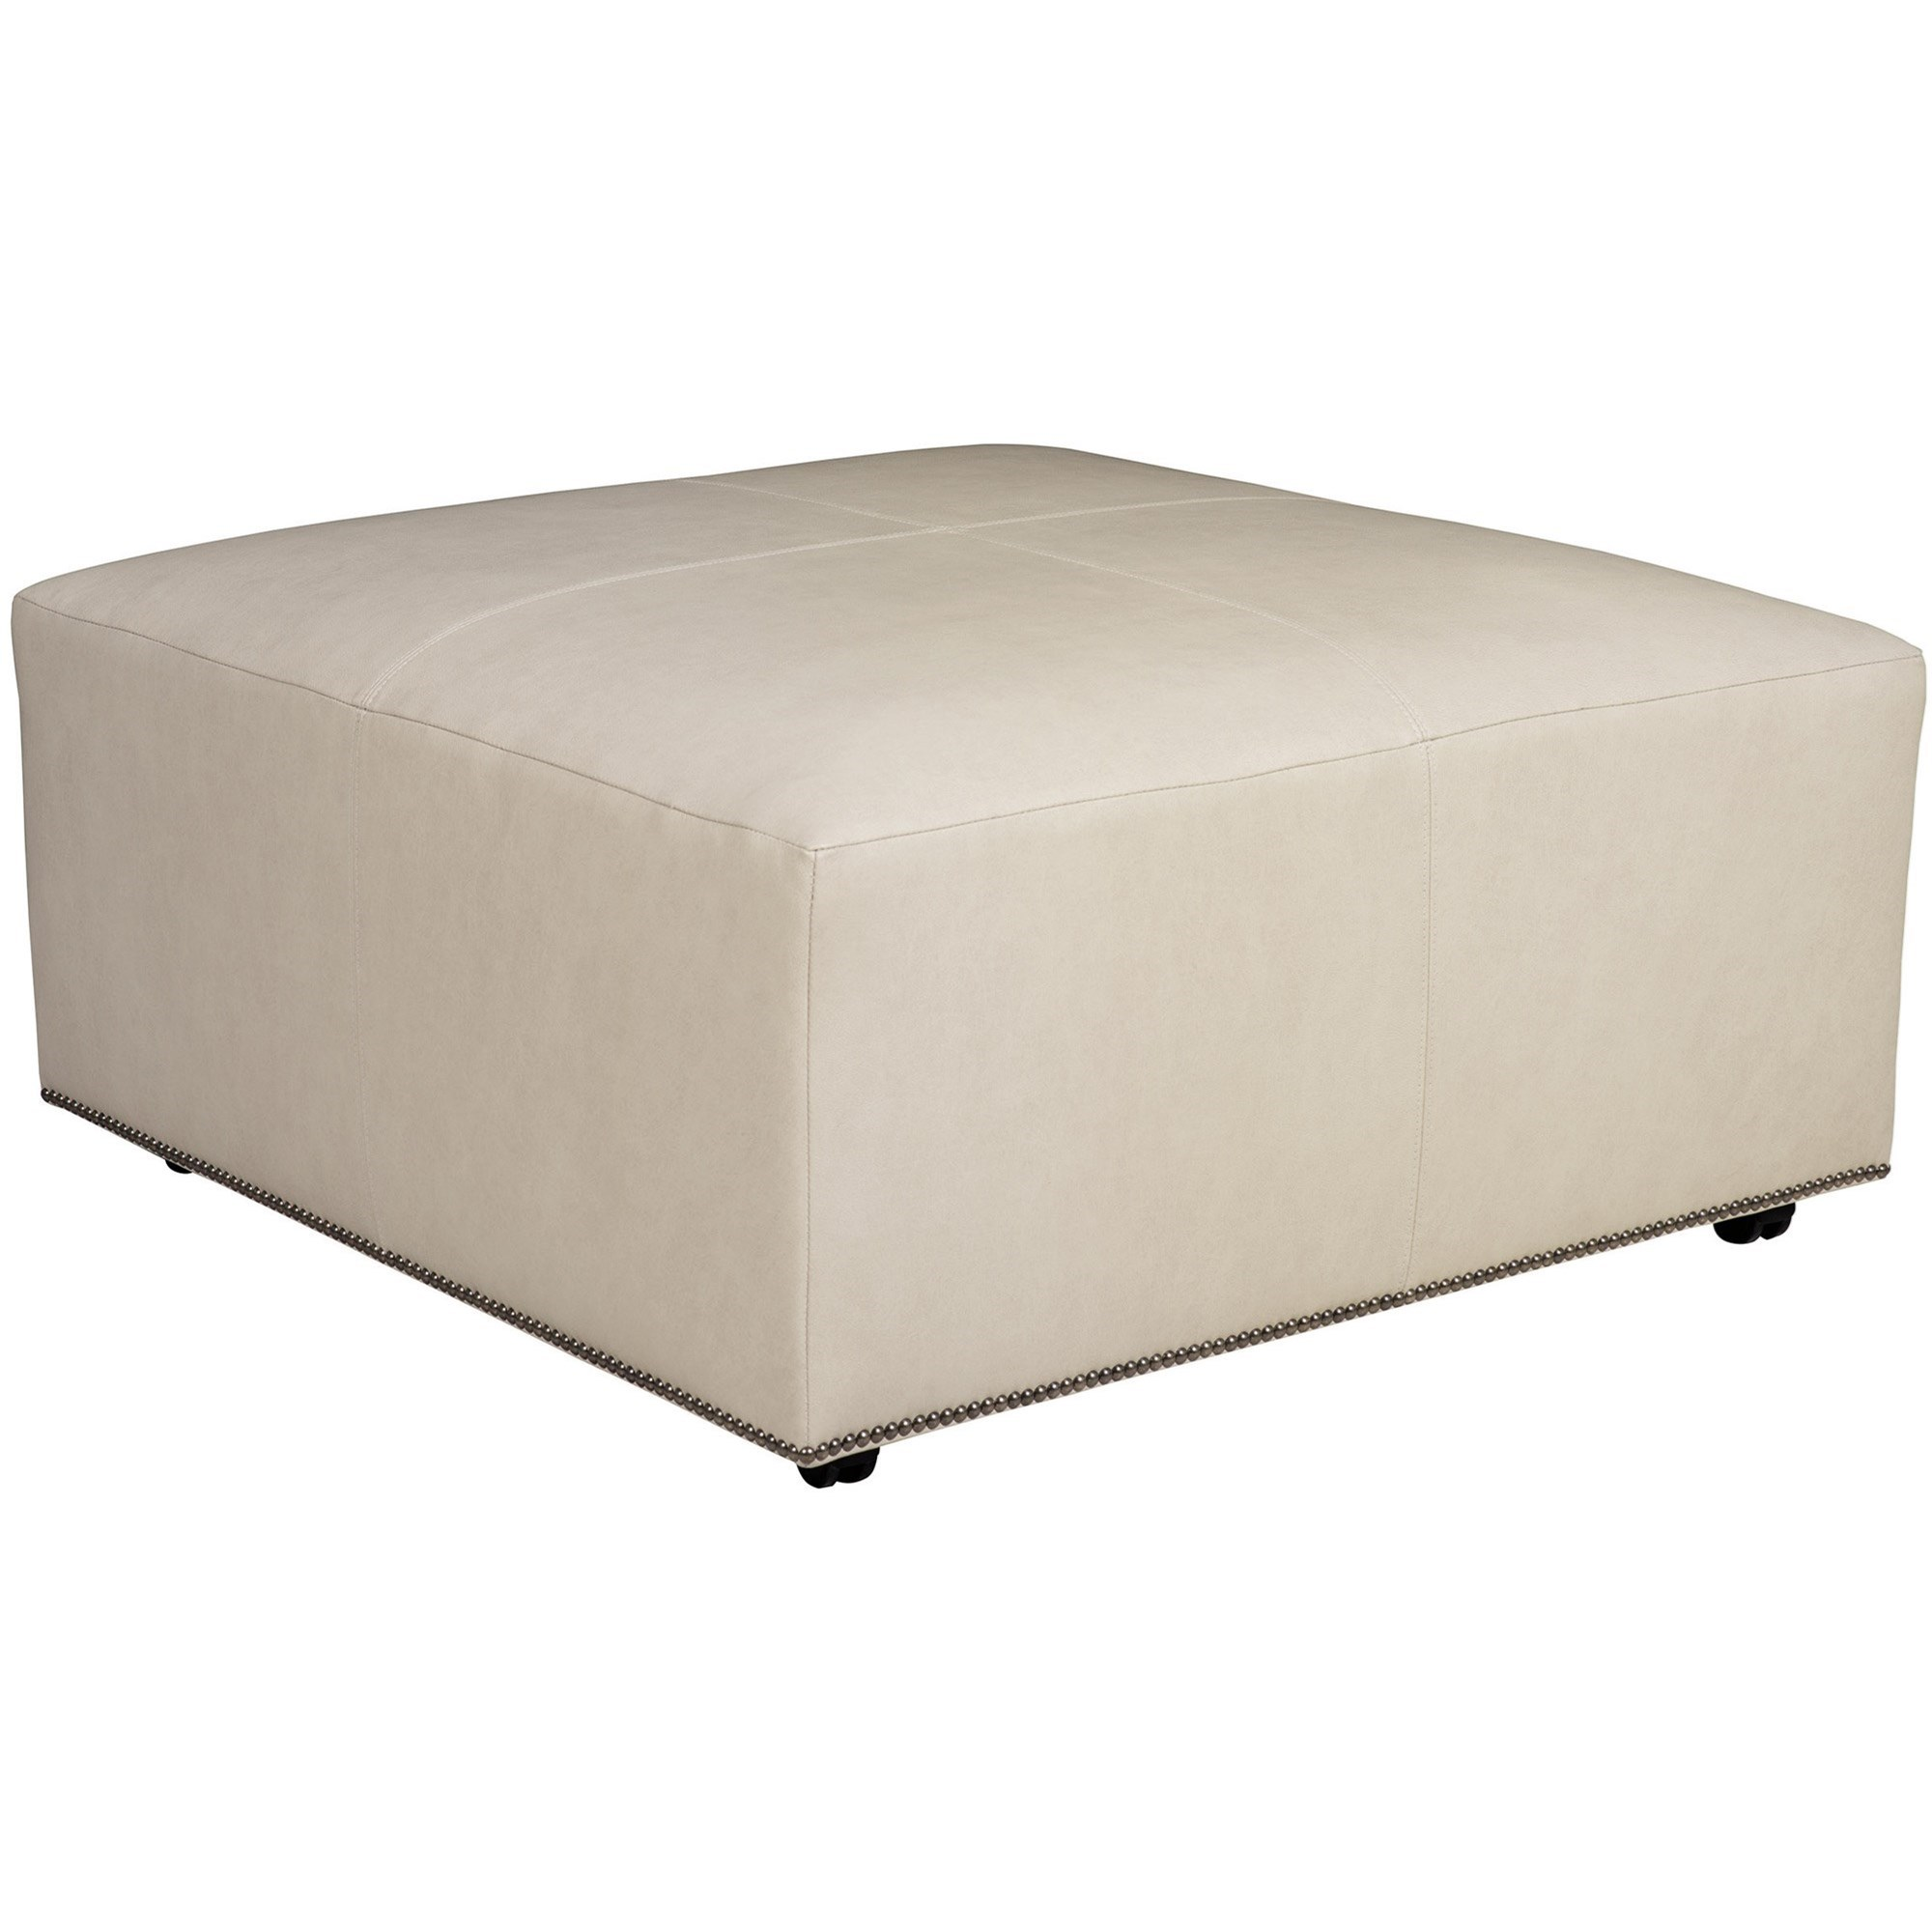 "Lolo Square 40"" Ottoman at Williams & Kay"